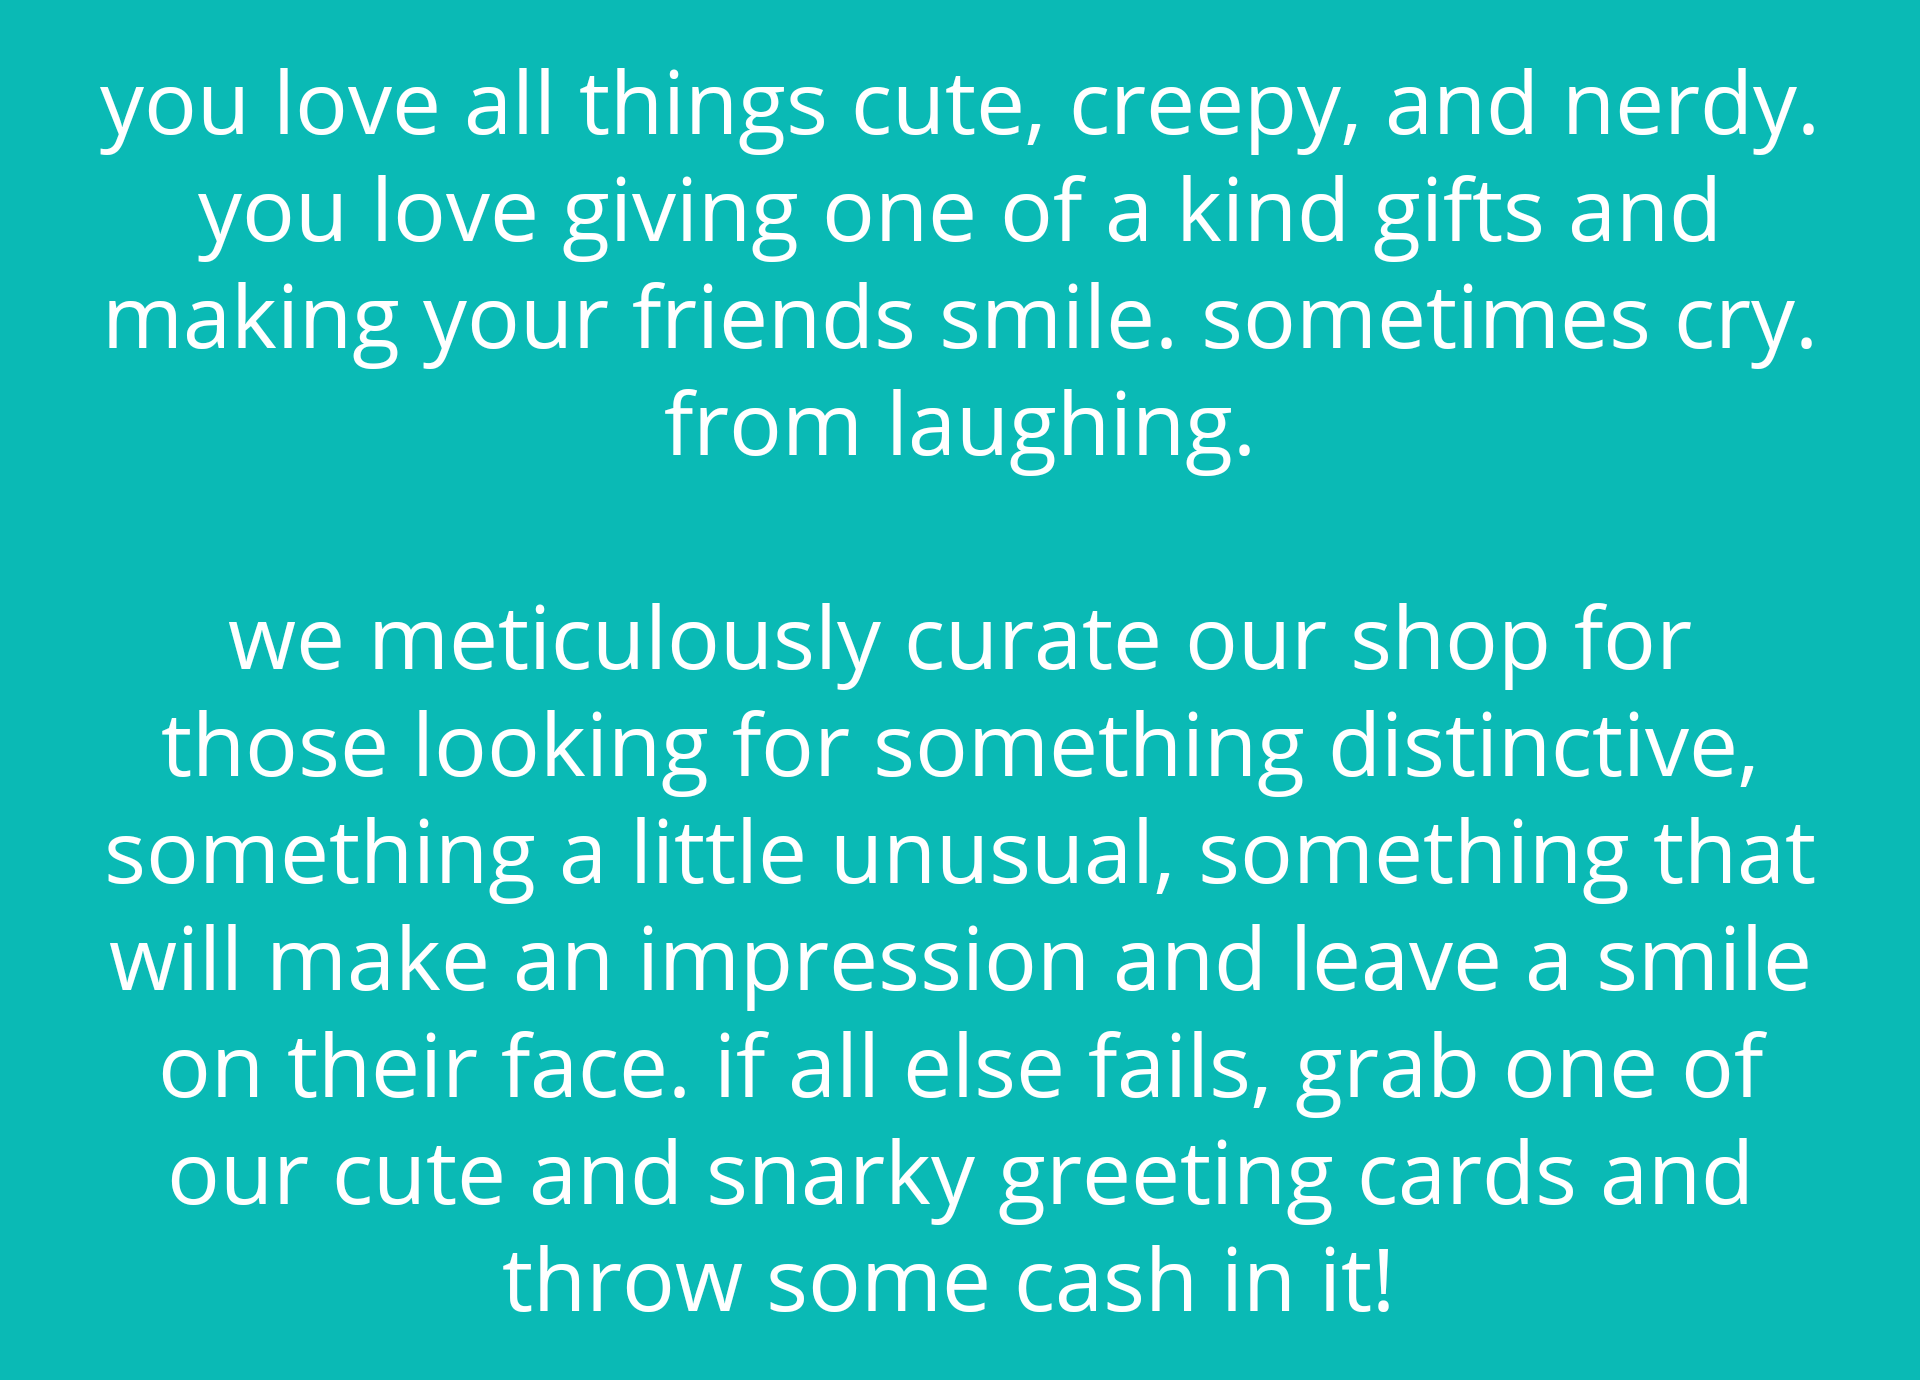 you love all things cute, creepy, and nerdy. you love giving one of a kind gifts and making your friends smile. sometimes cry. from laughing.  we meticulously curate our shop for those looking for something distinctive, something a little unusual, something that will make an impression and leave a smile on their face. if all else fails, grab one of our cute and snarky greeting cards and throw some cash in it!